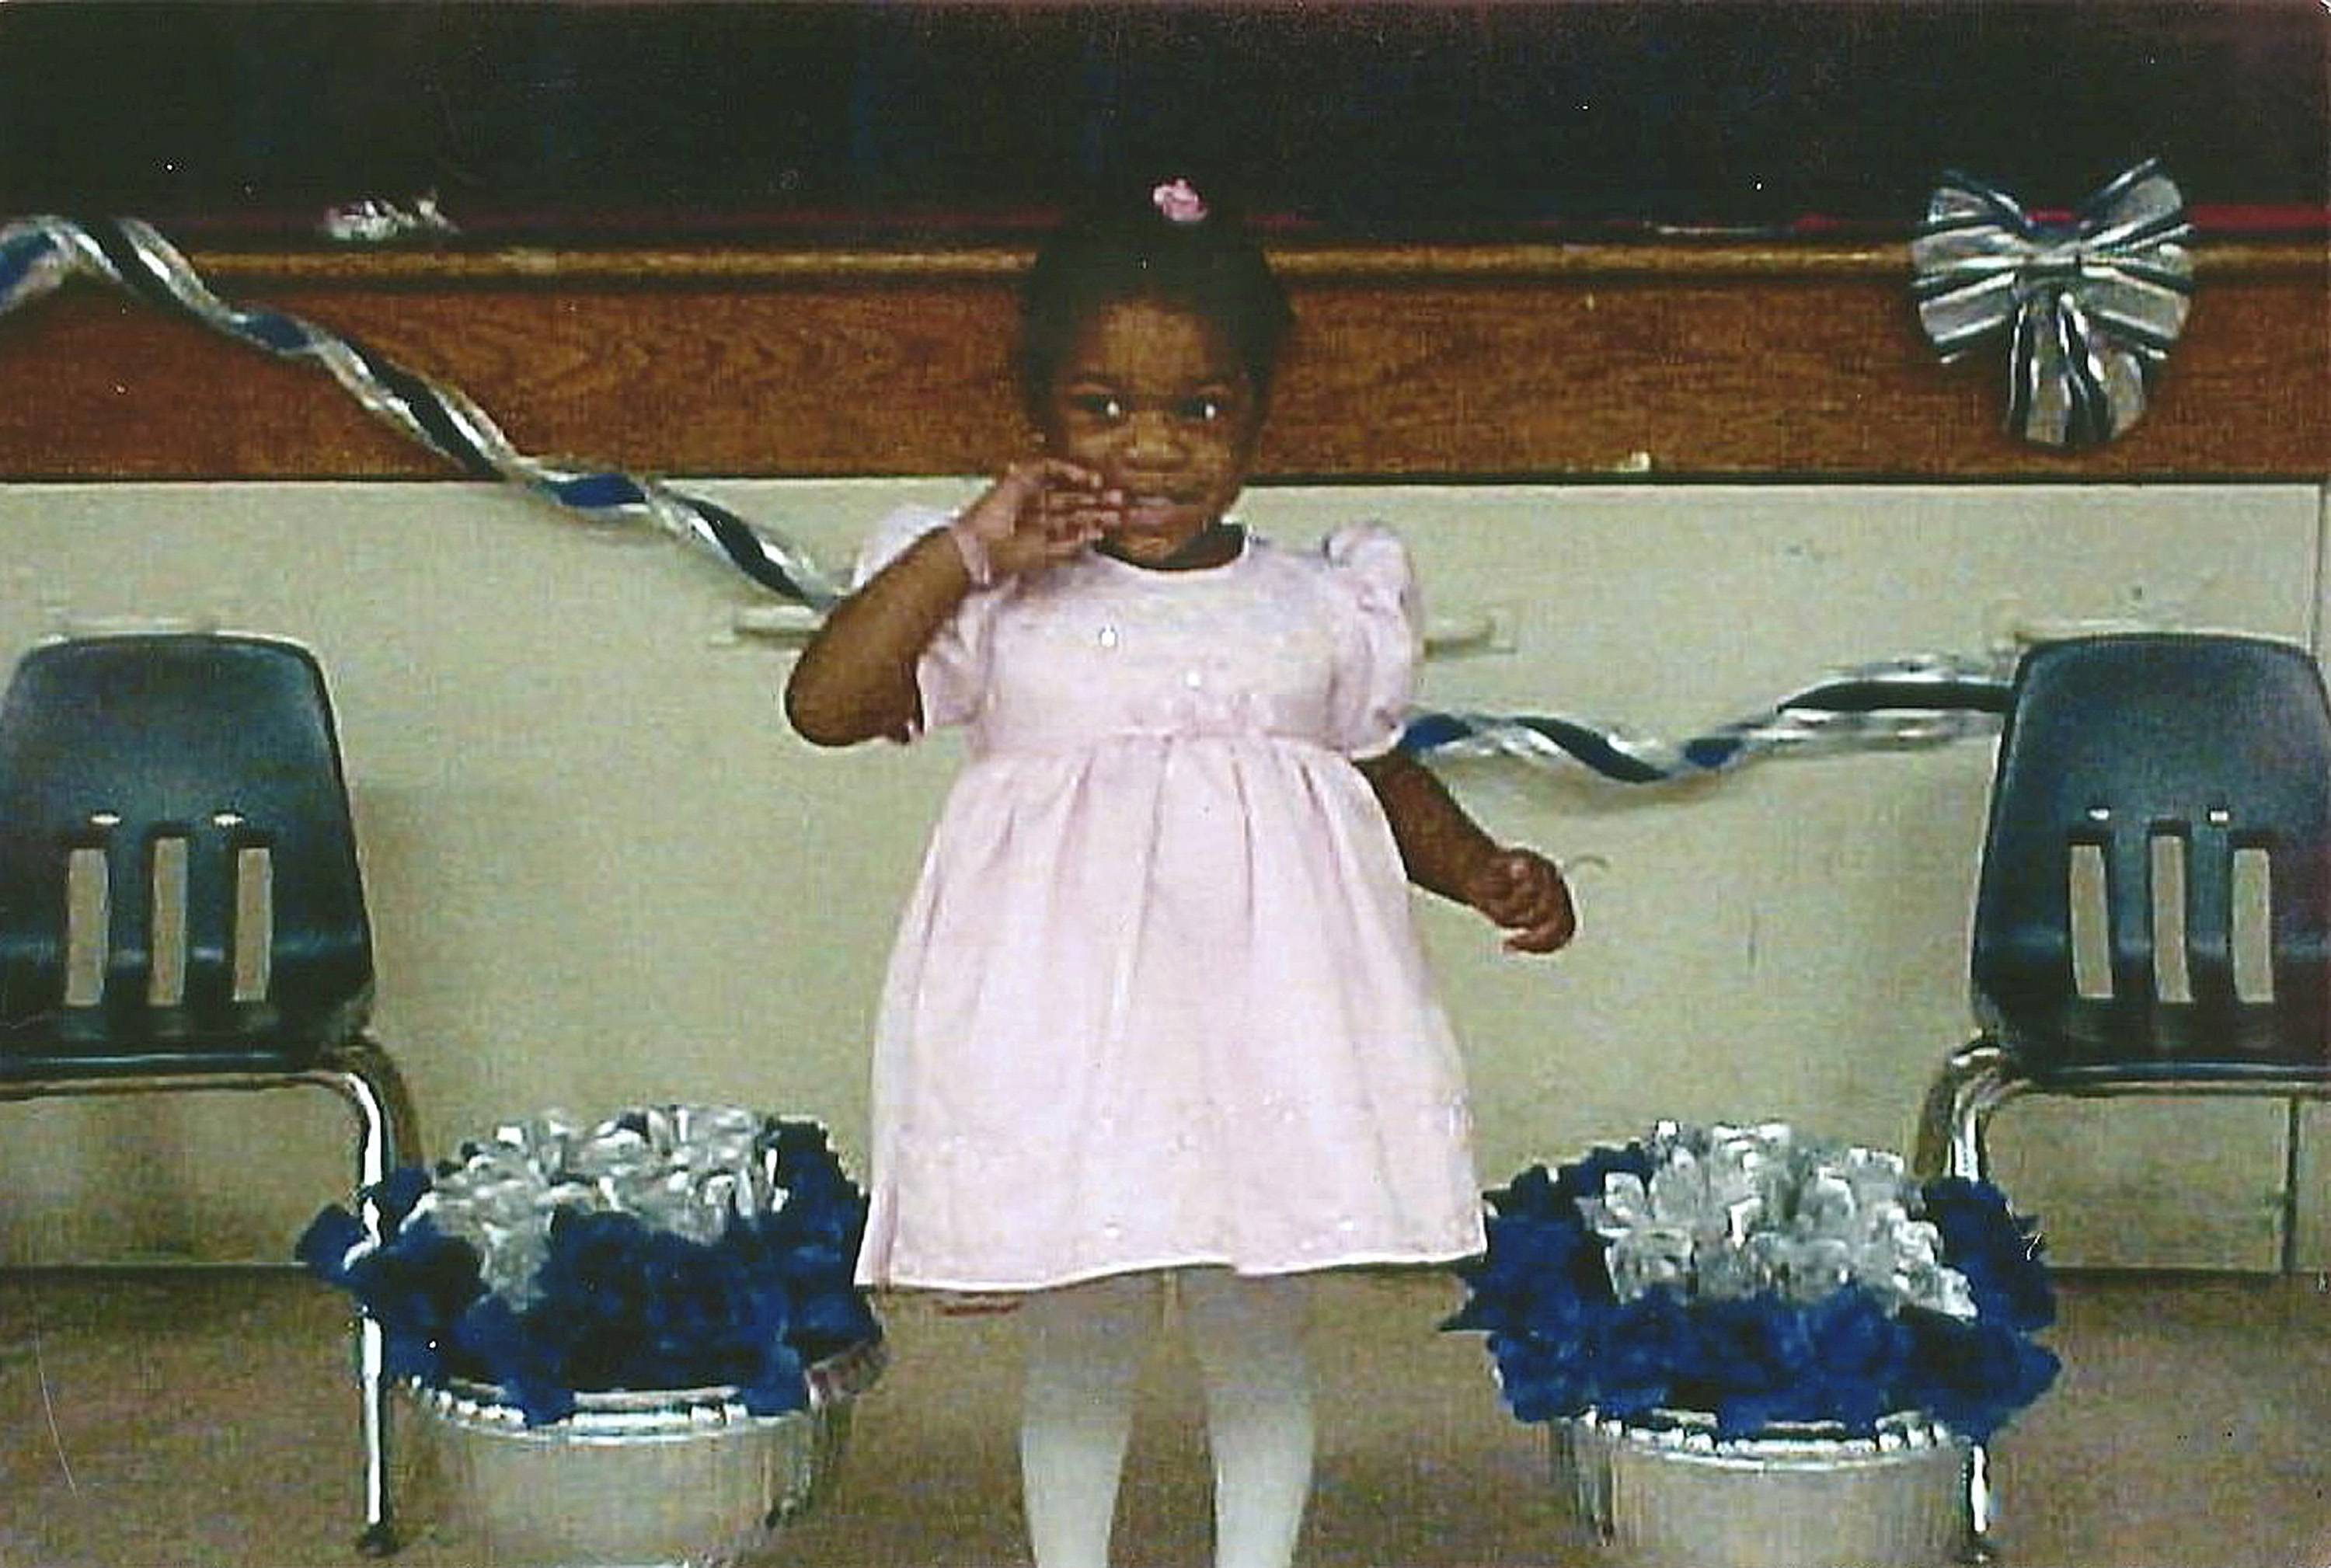 The acknowledged role of Delilah Williams in the abuse of her stepdaughter, Talia Williams, pictured, helped keep her husband Naeem Williams from receiving the death penalty after he was convicted of murdering his daughter. He is scheduled to be sentenced in October.